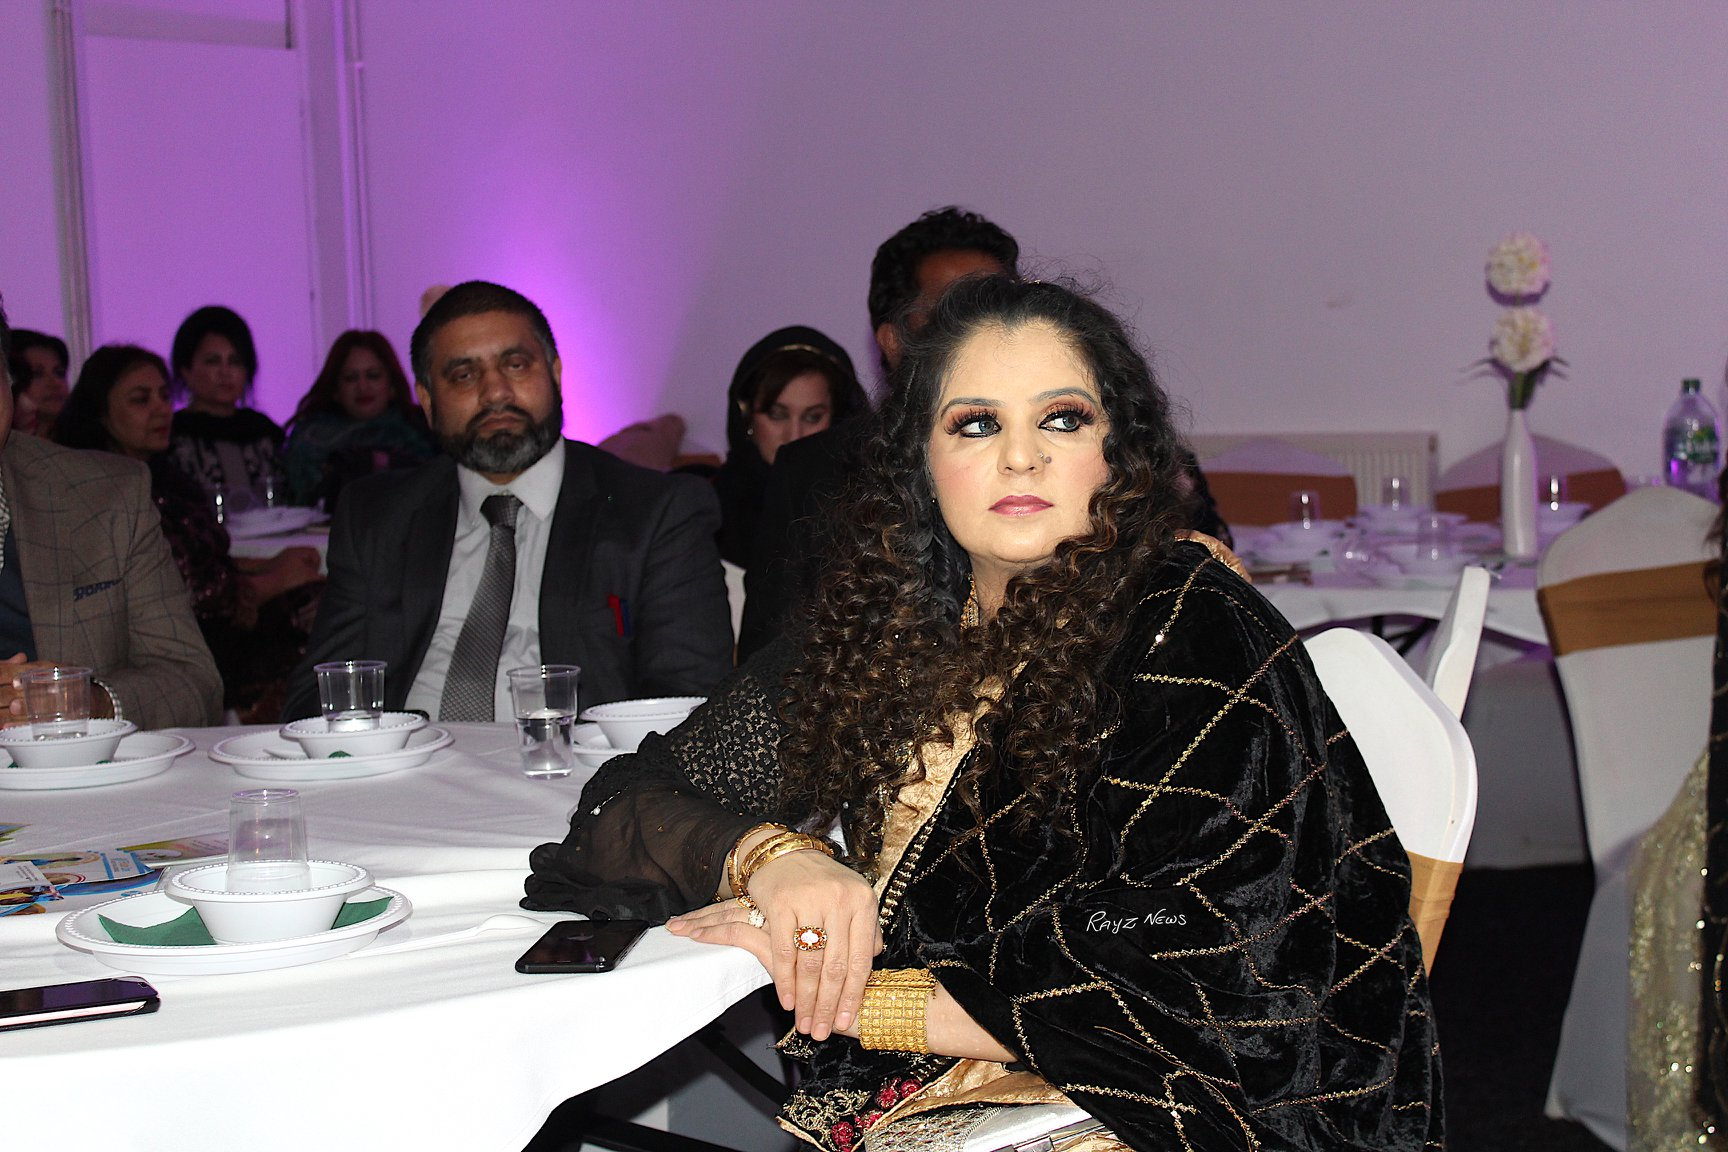 Qawali night was organised by well known community and public figures Sajjad Mirza